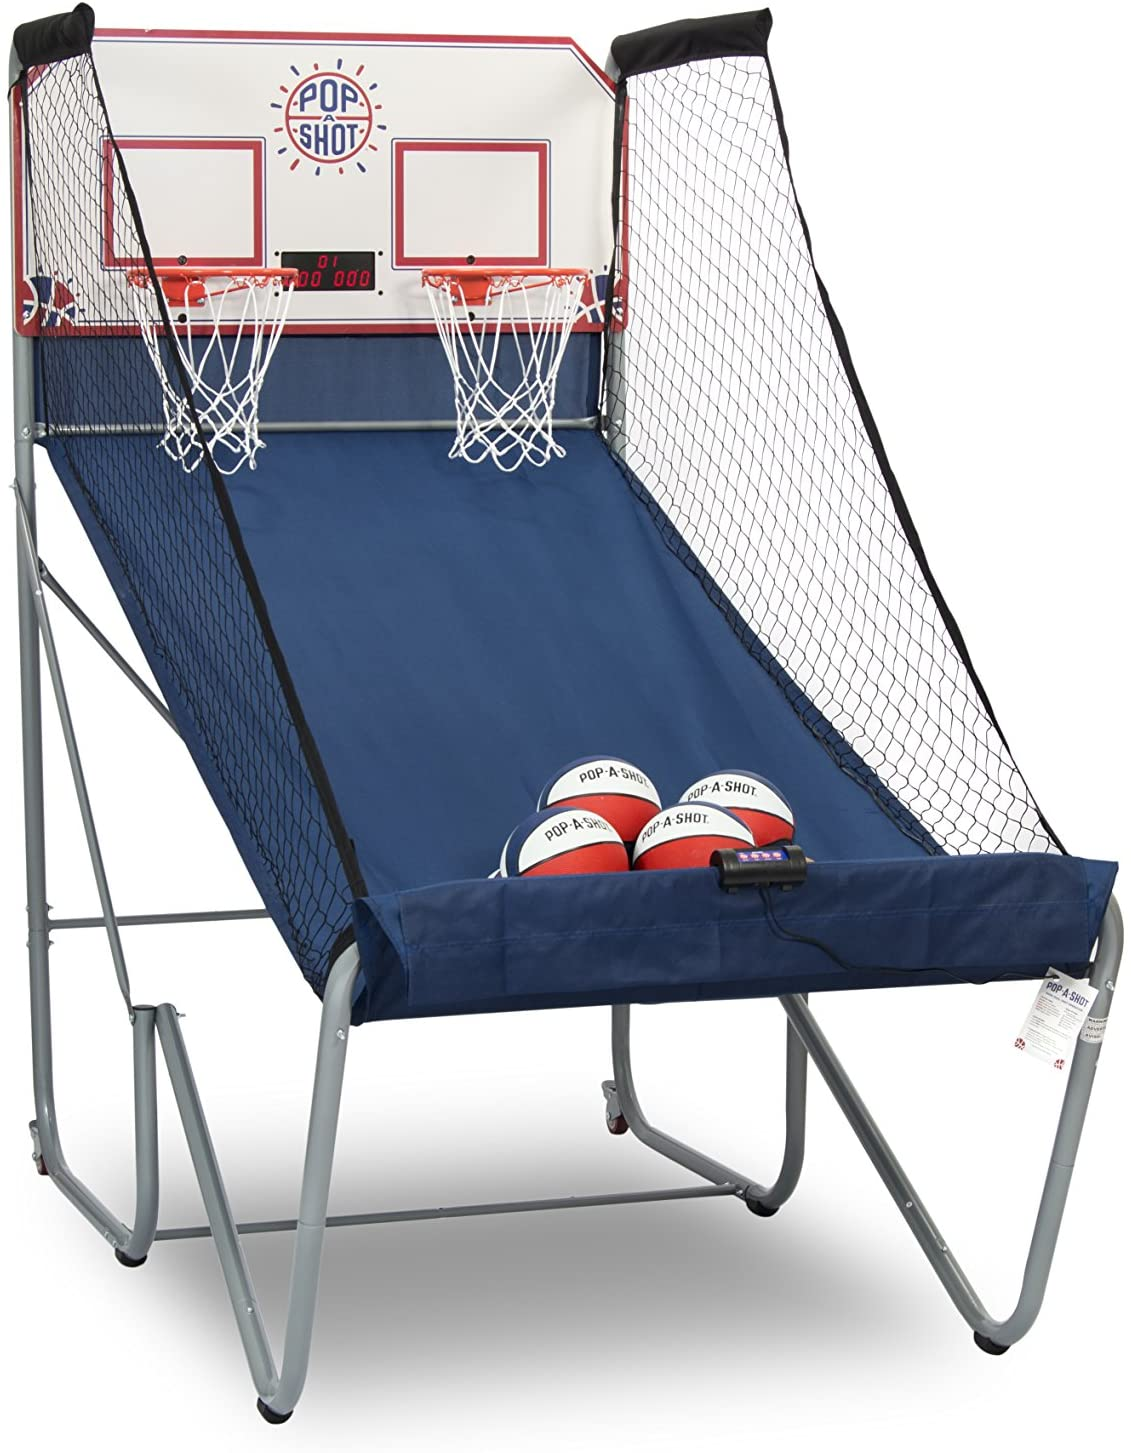 Pop-A-Shot Official Home Dual Shot Basketball Arcade Game, $300 @amazon.com